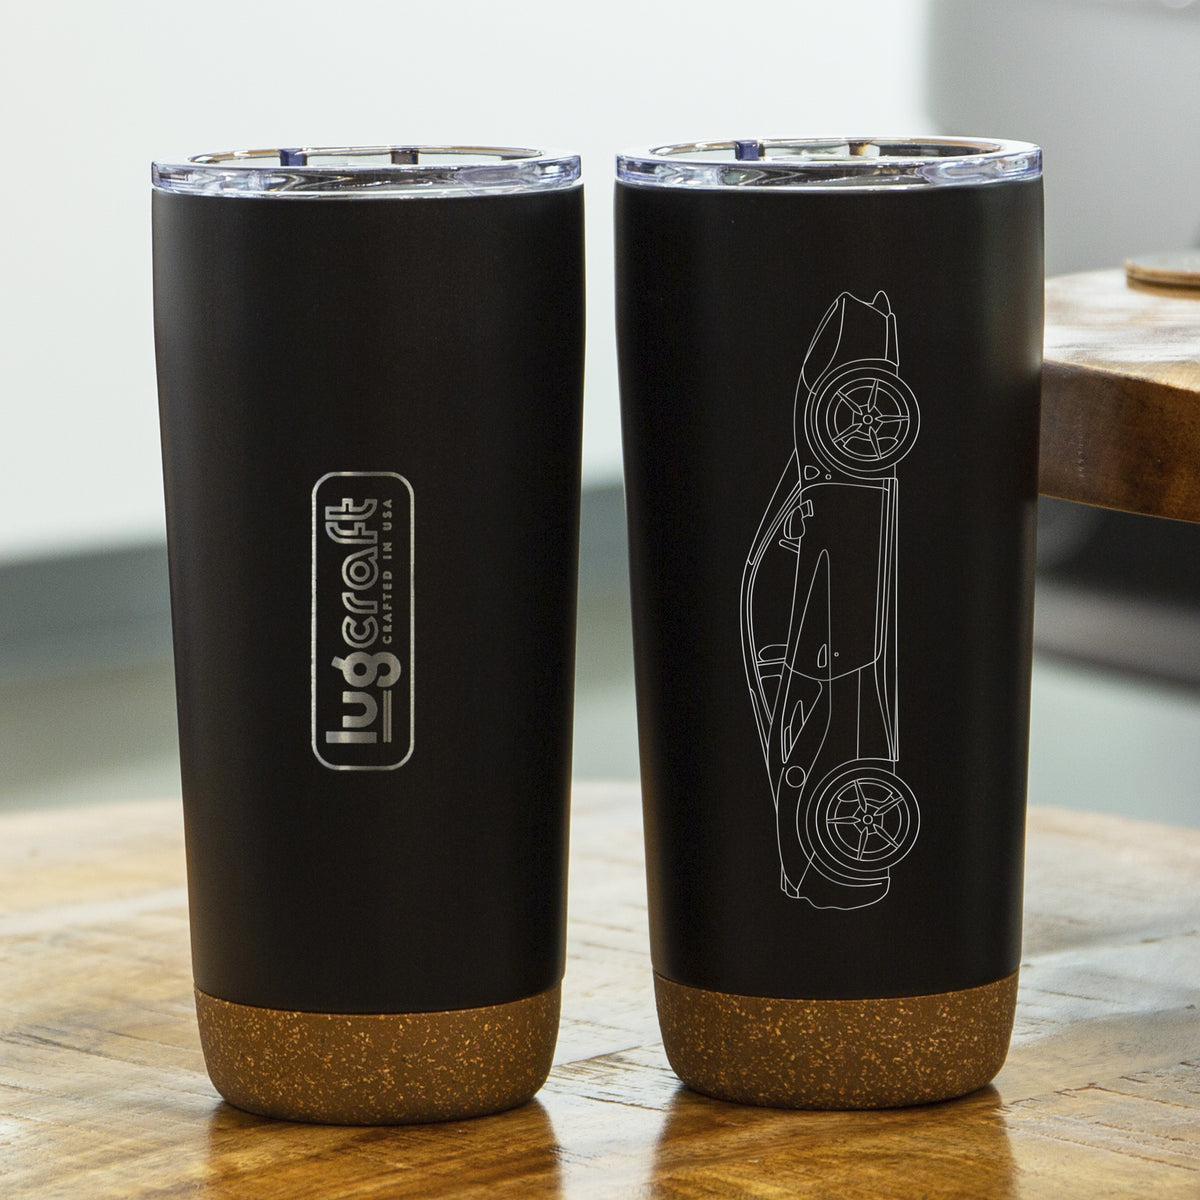 Ferrari 488 Insulated Stainless Steel Coffee Tumbler - 20 oz